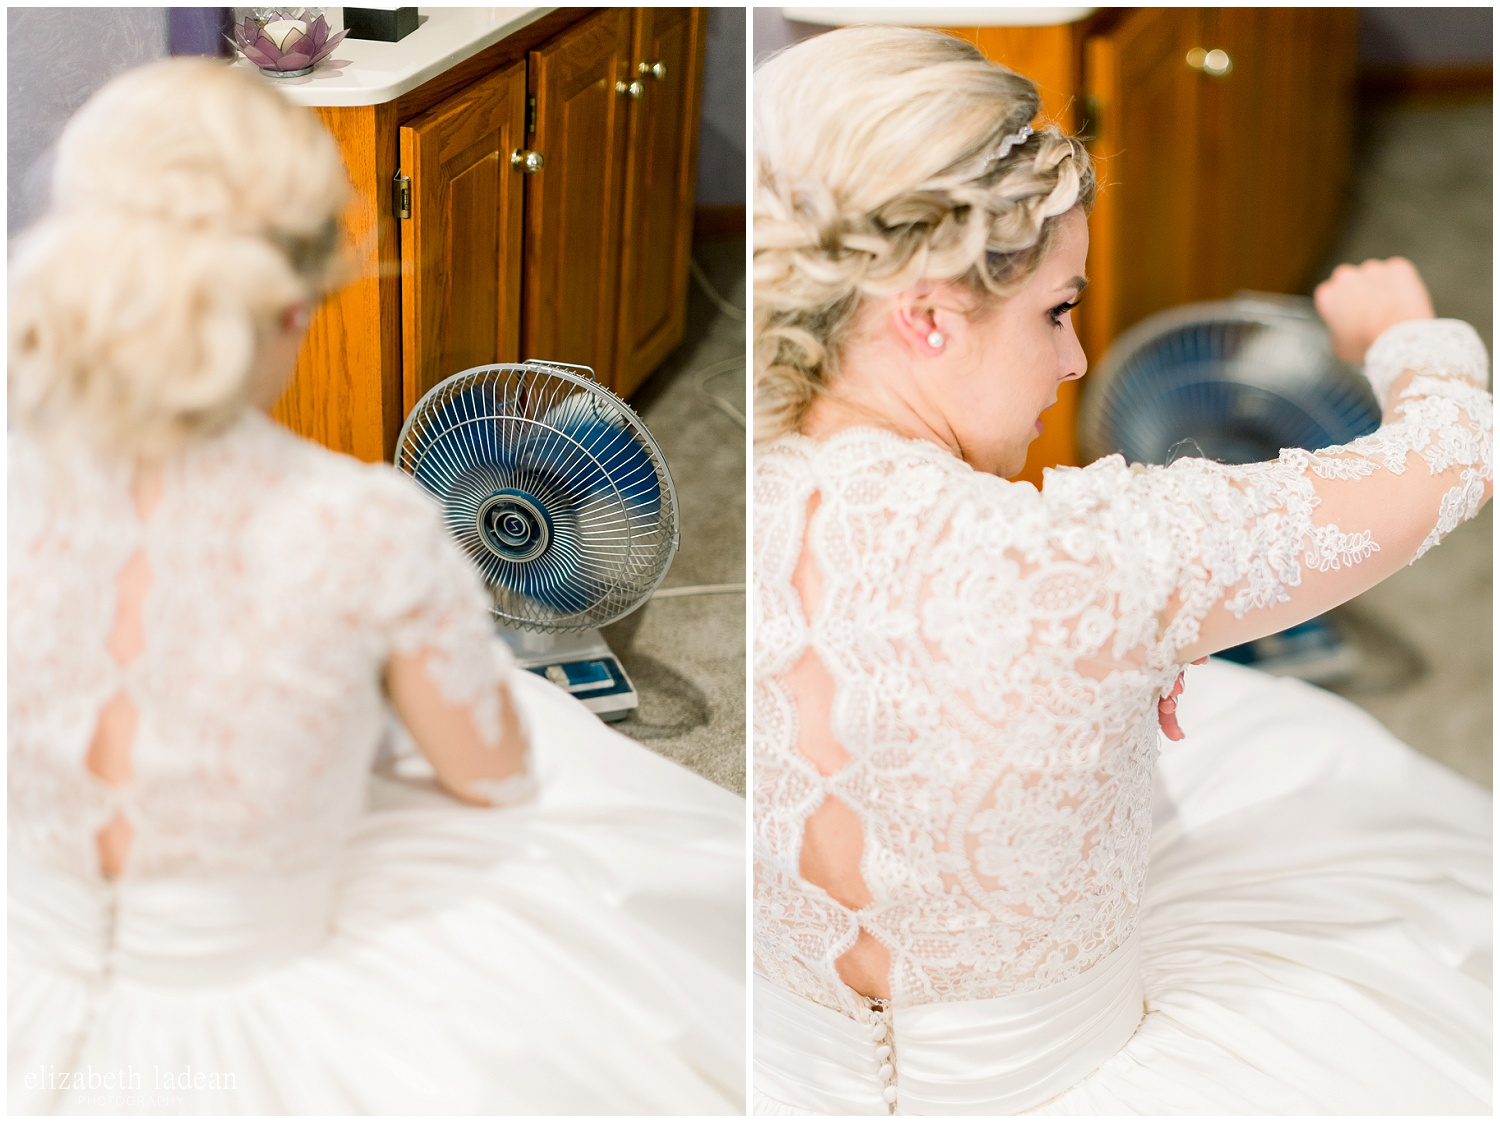 -behind-the-scenes-of-a-wedding-photographer-2018-elizabeth-ladean-photography-photo_3563.jpg